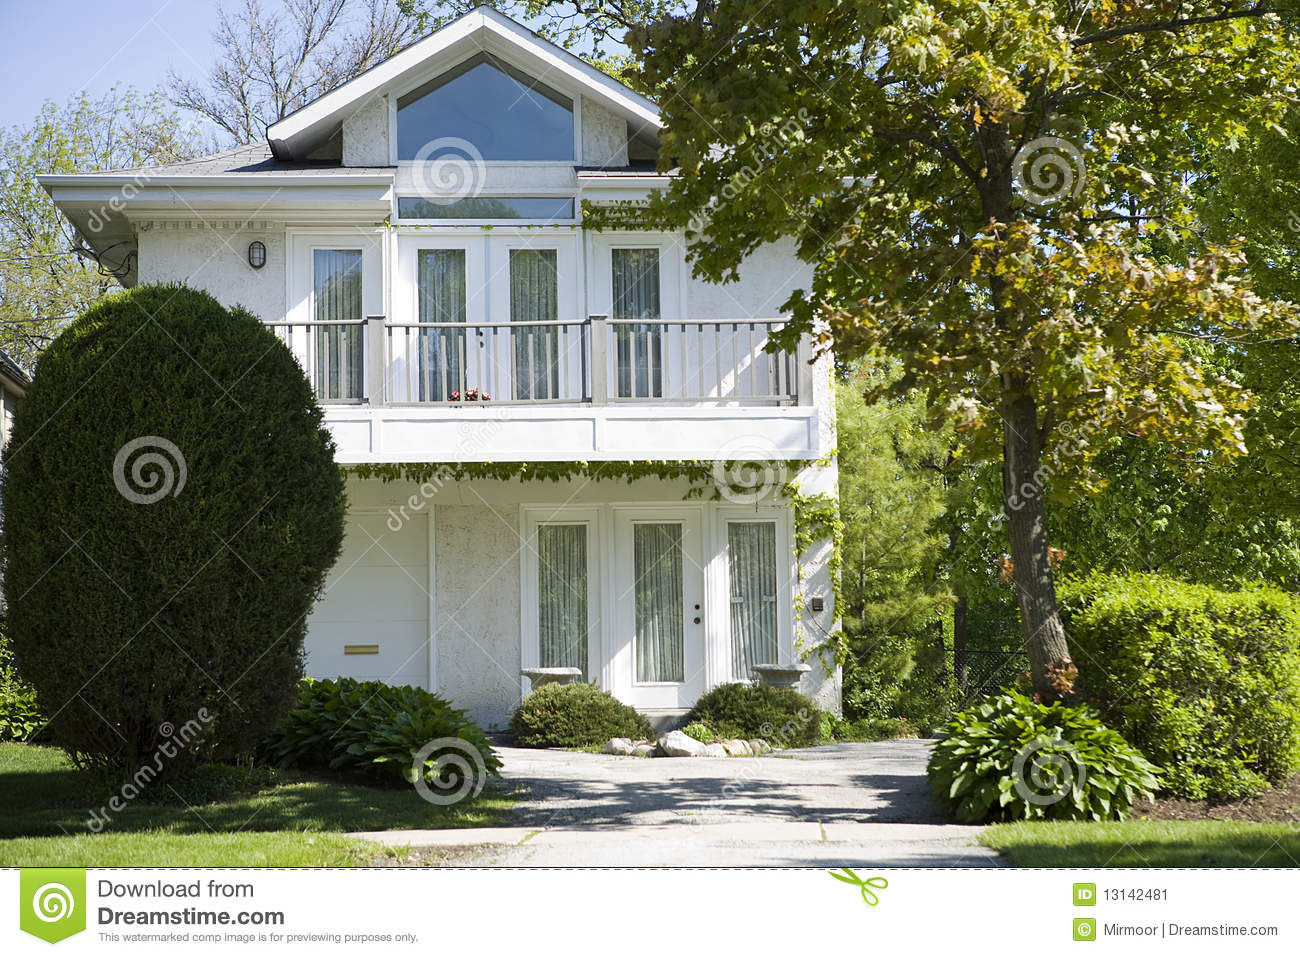 american home and garden stock image image 13142481